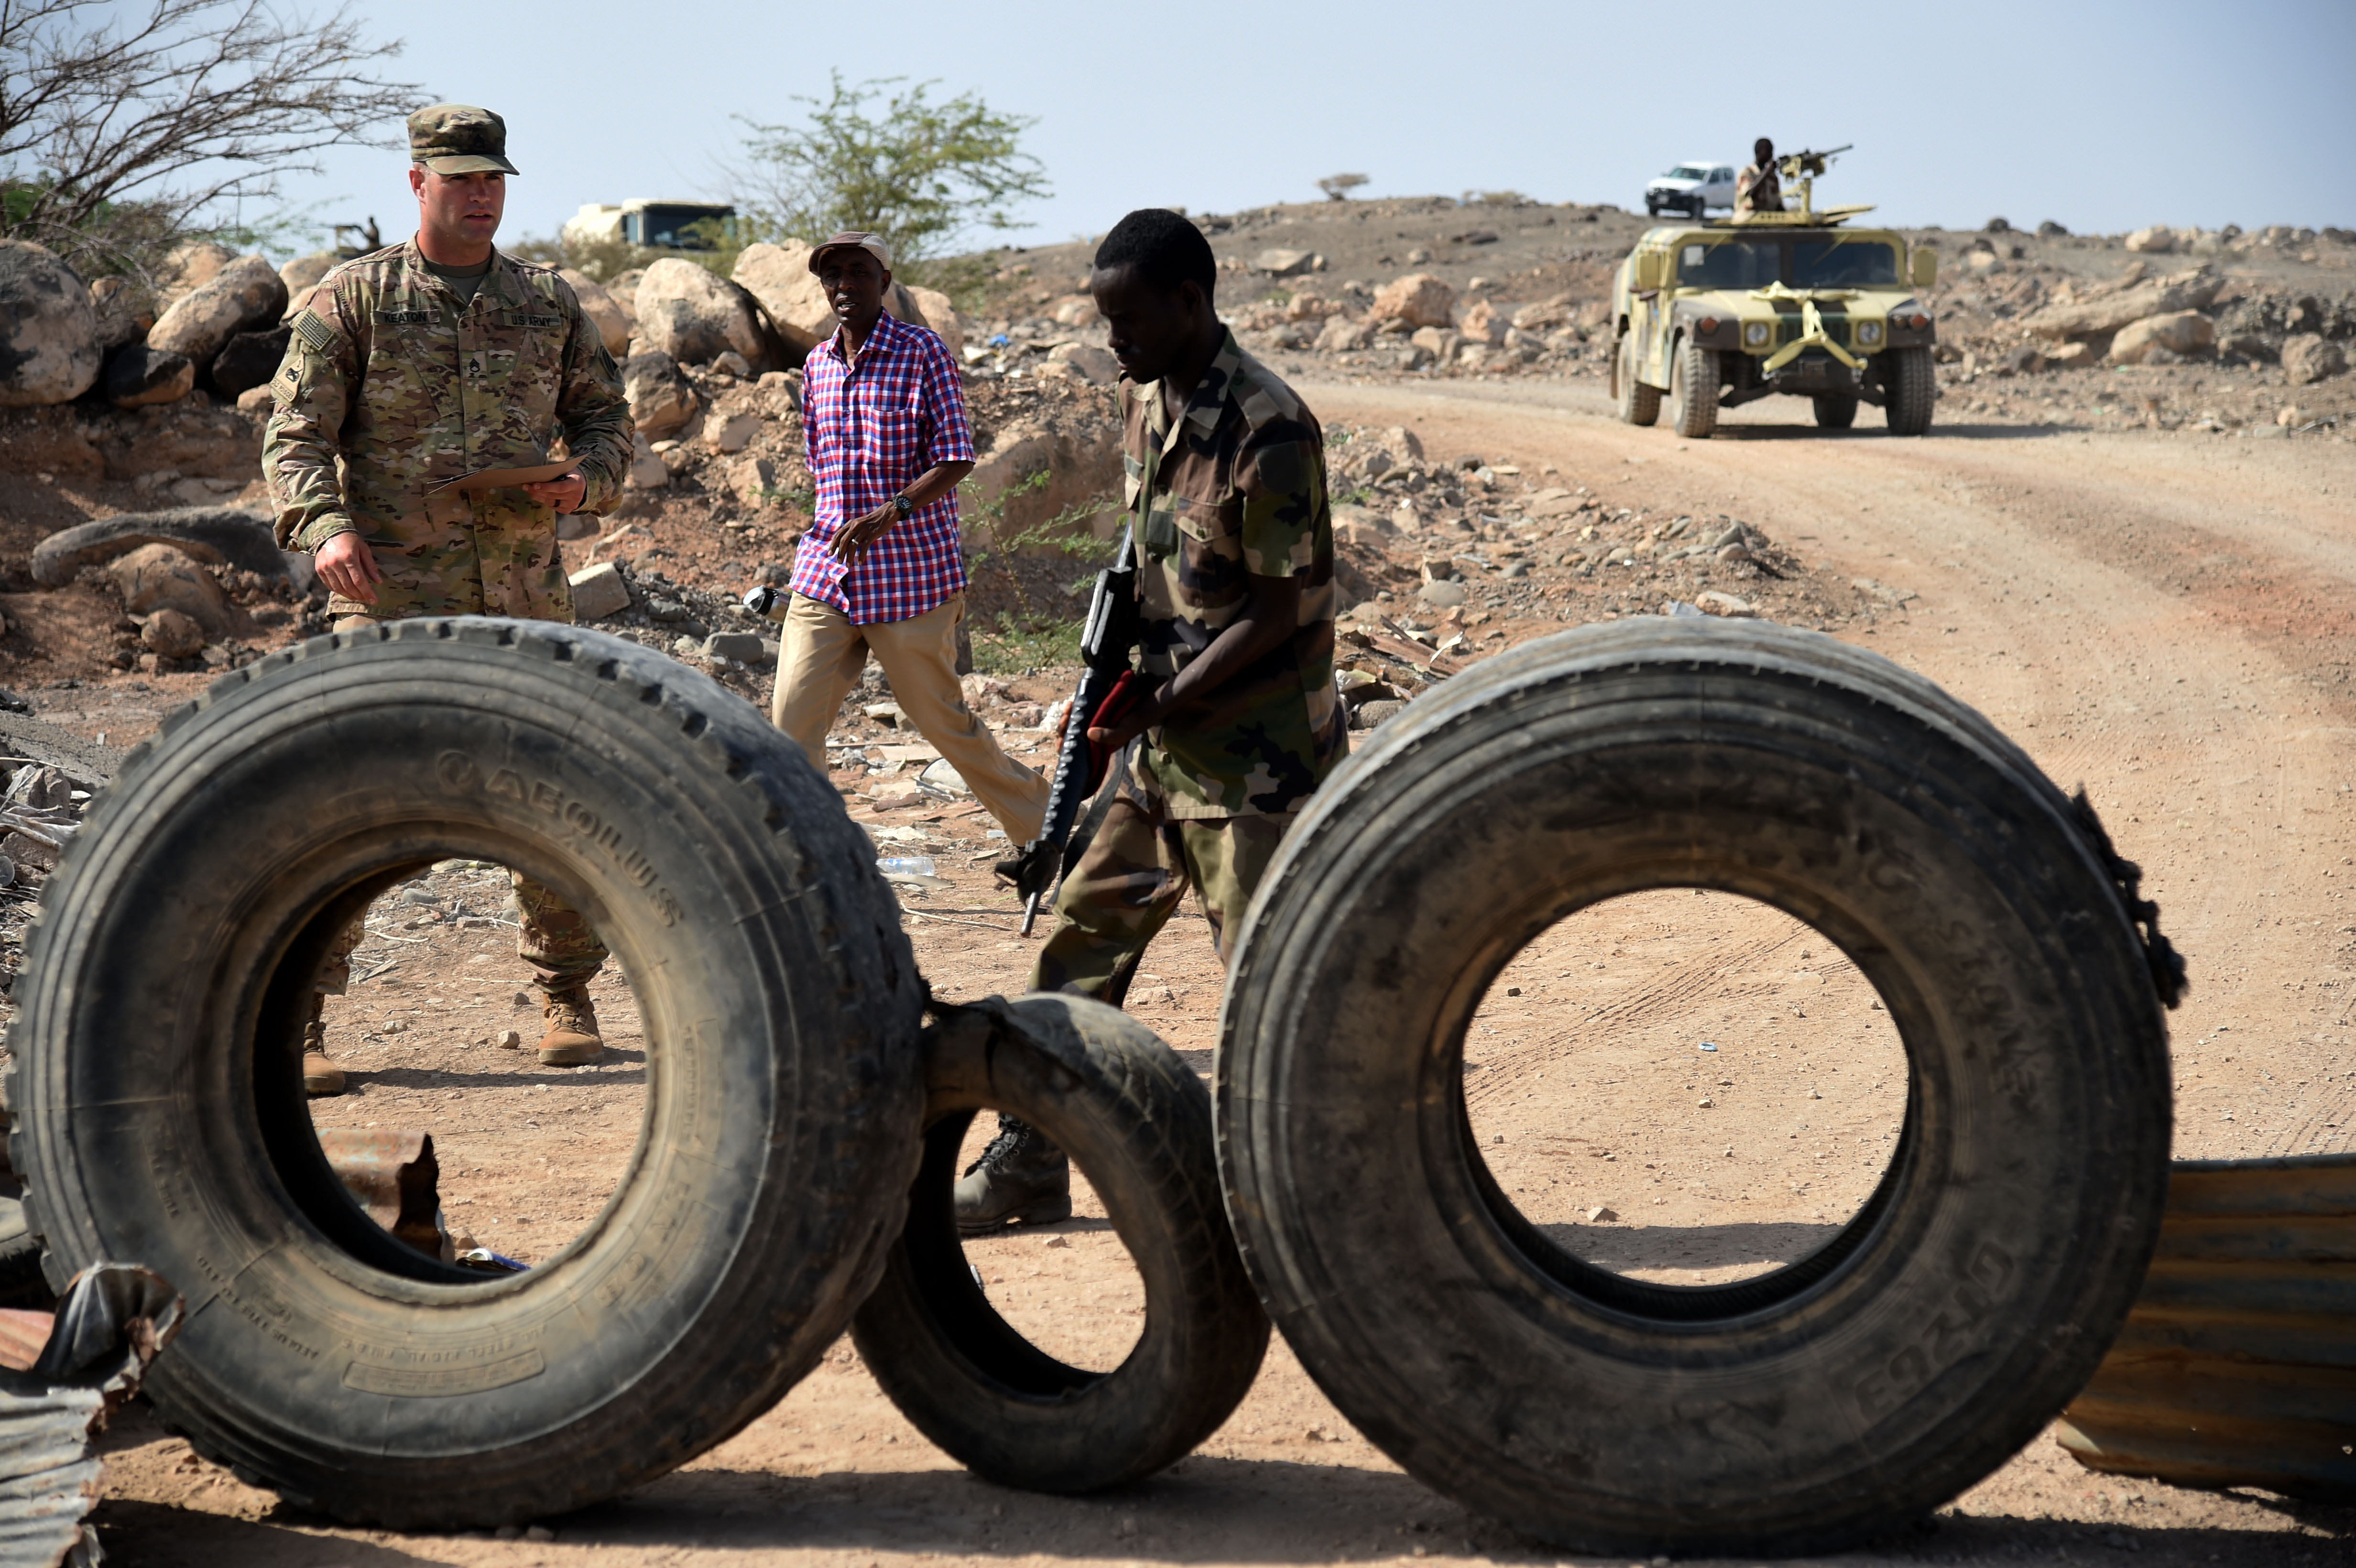 CAMP CHEIK OSMAN, Djibouti – U.S. Army Staff Sgt. Richard Keaton, U.S. Army Regionally Aligned Forces instructor, tests a Djiboutian Armed Forces (FAD) soldier on identifying a mock roadside bomb during a road block test, May 16, 2016, at Camp Cheik Osman, Djibouti. The USARAF spent approximately five months with FAD soldiers training them on various combat skills from medical care, rifle marksmanship, improvised explosive device recognition, convoy procedures and more. (U.S. Air Force photo by Staff Sgt. Tiffany DeNault)